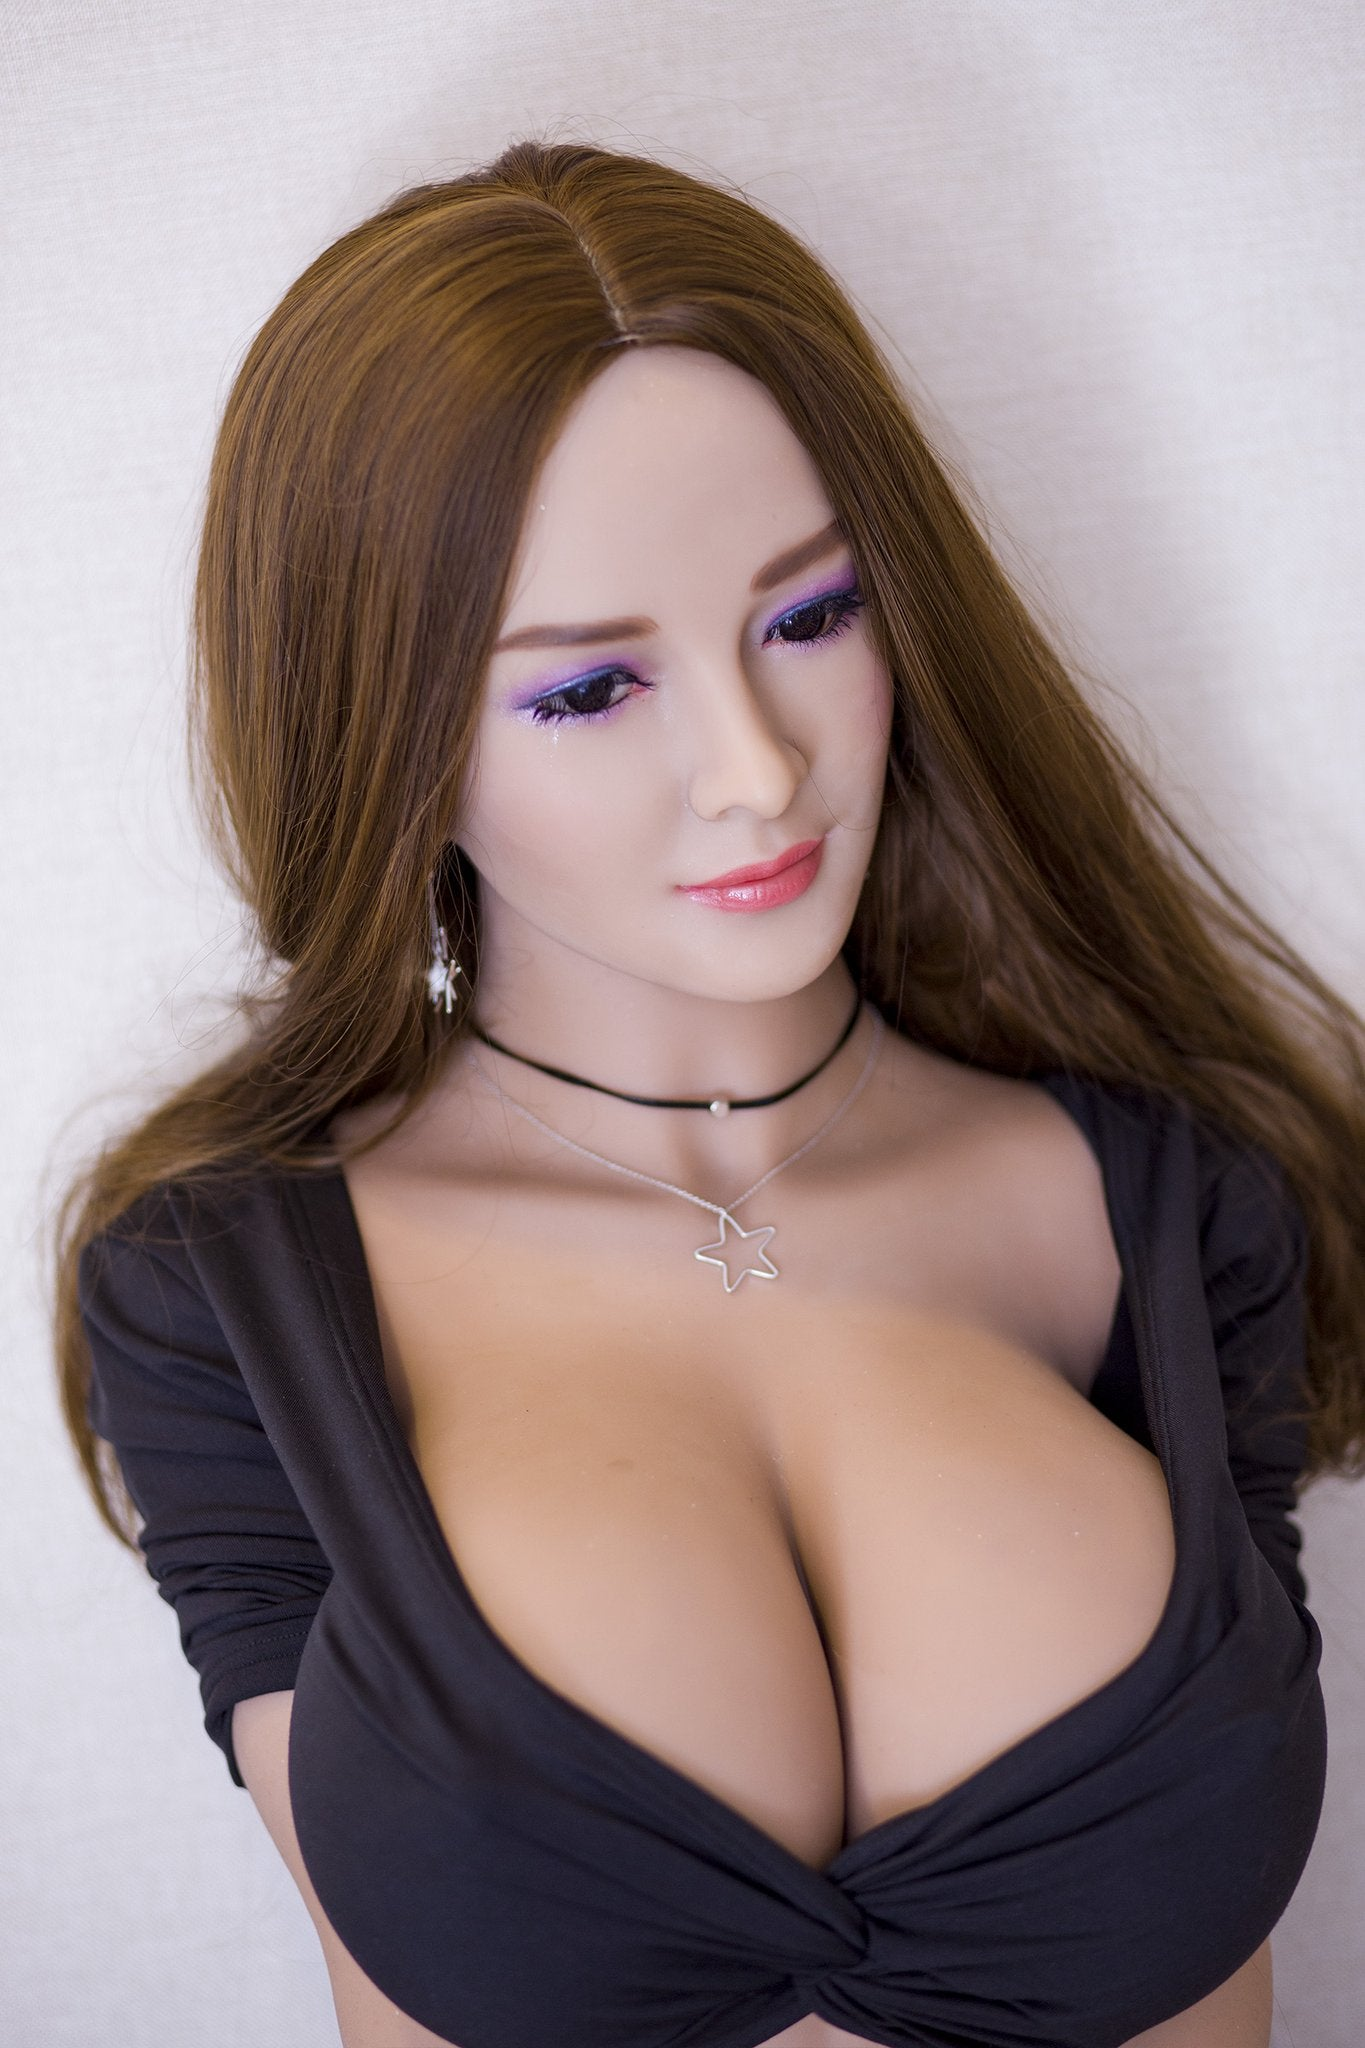 reba 153cm brown hair curvy giant massive tits jy athletic tpe sex doll(2)